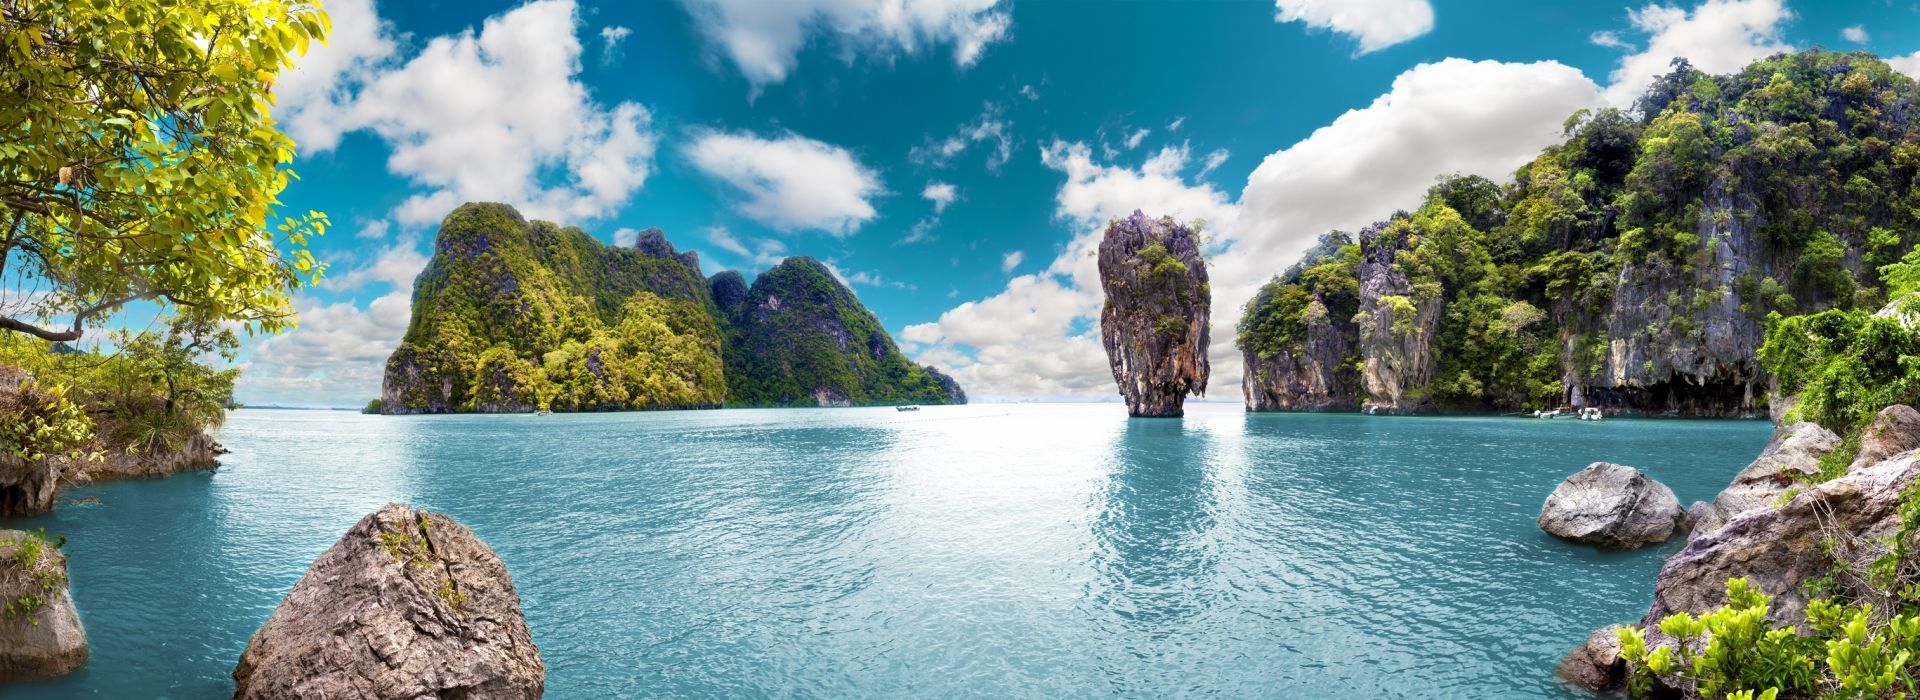 Beach, romance, getaways and relaxation Tours in Thailand